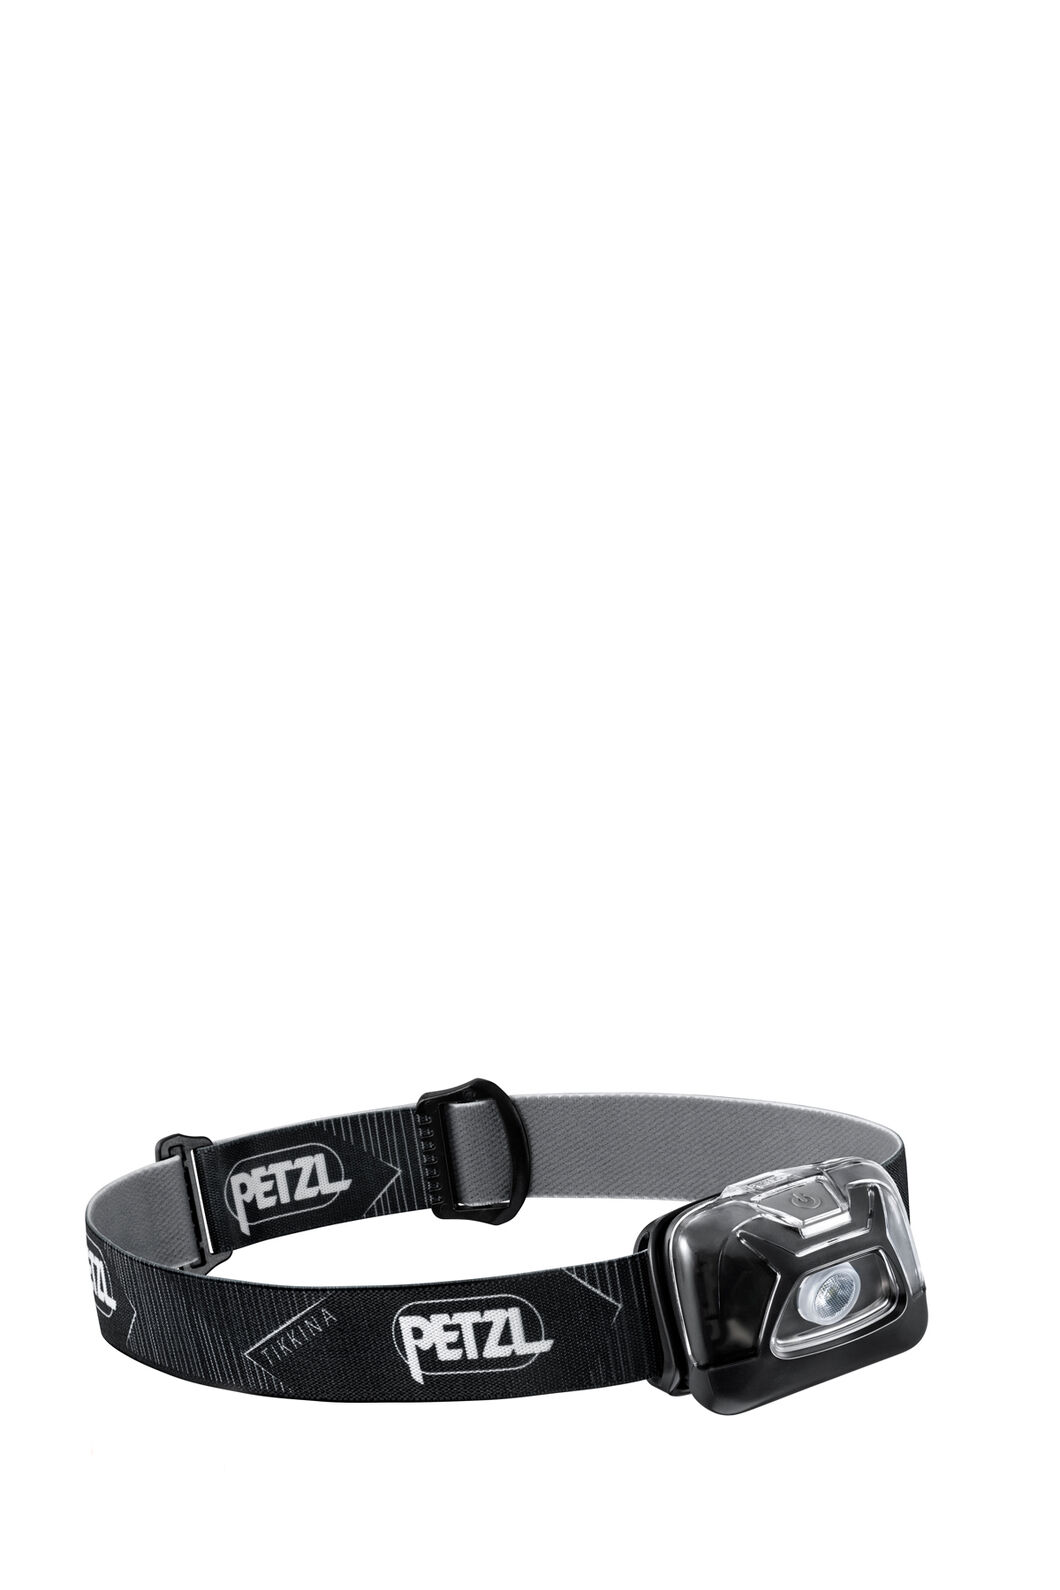 Petzl Tikkina Head Torch, Black, hi-res